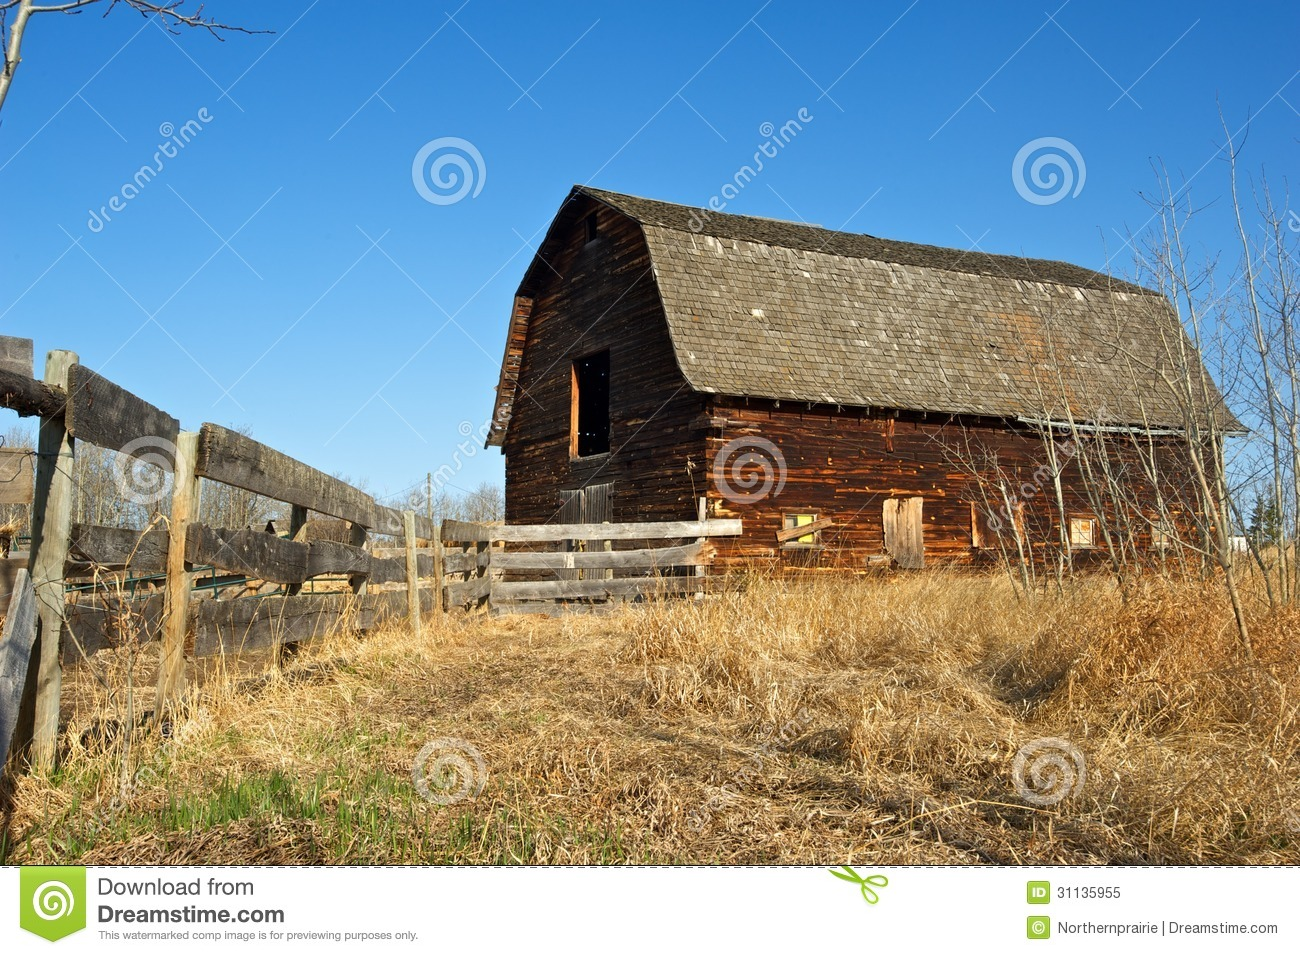 Abandoned Old Barn And Wooden Fence Stock Image - Image ...